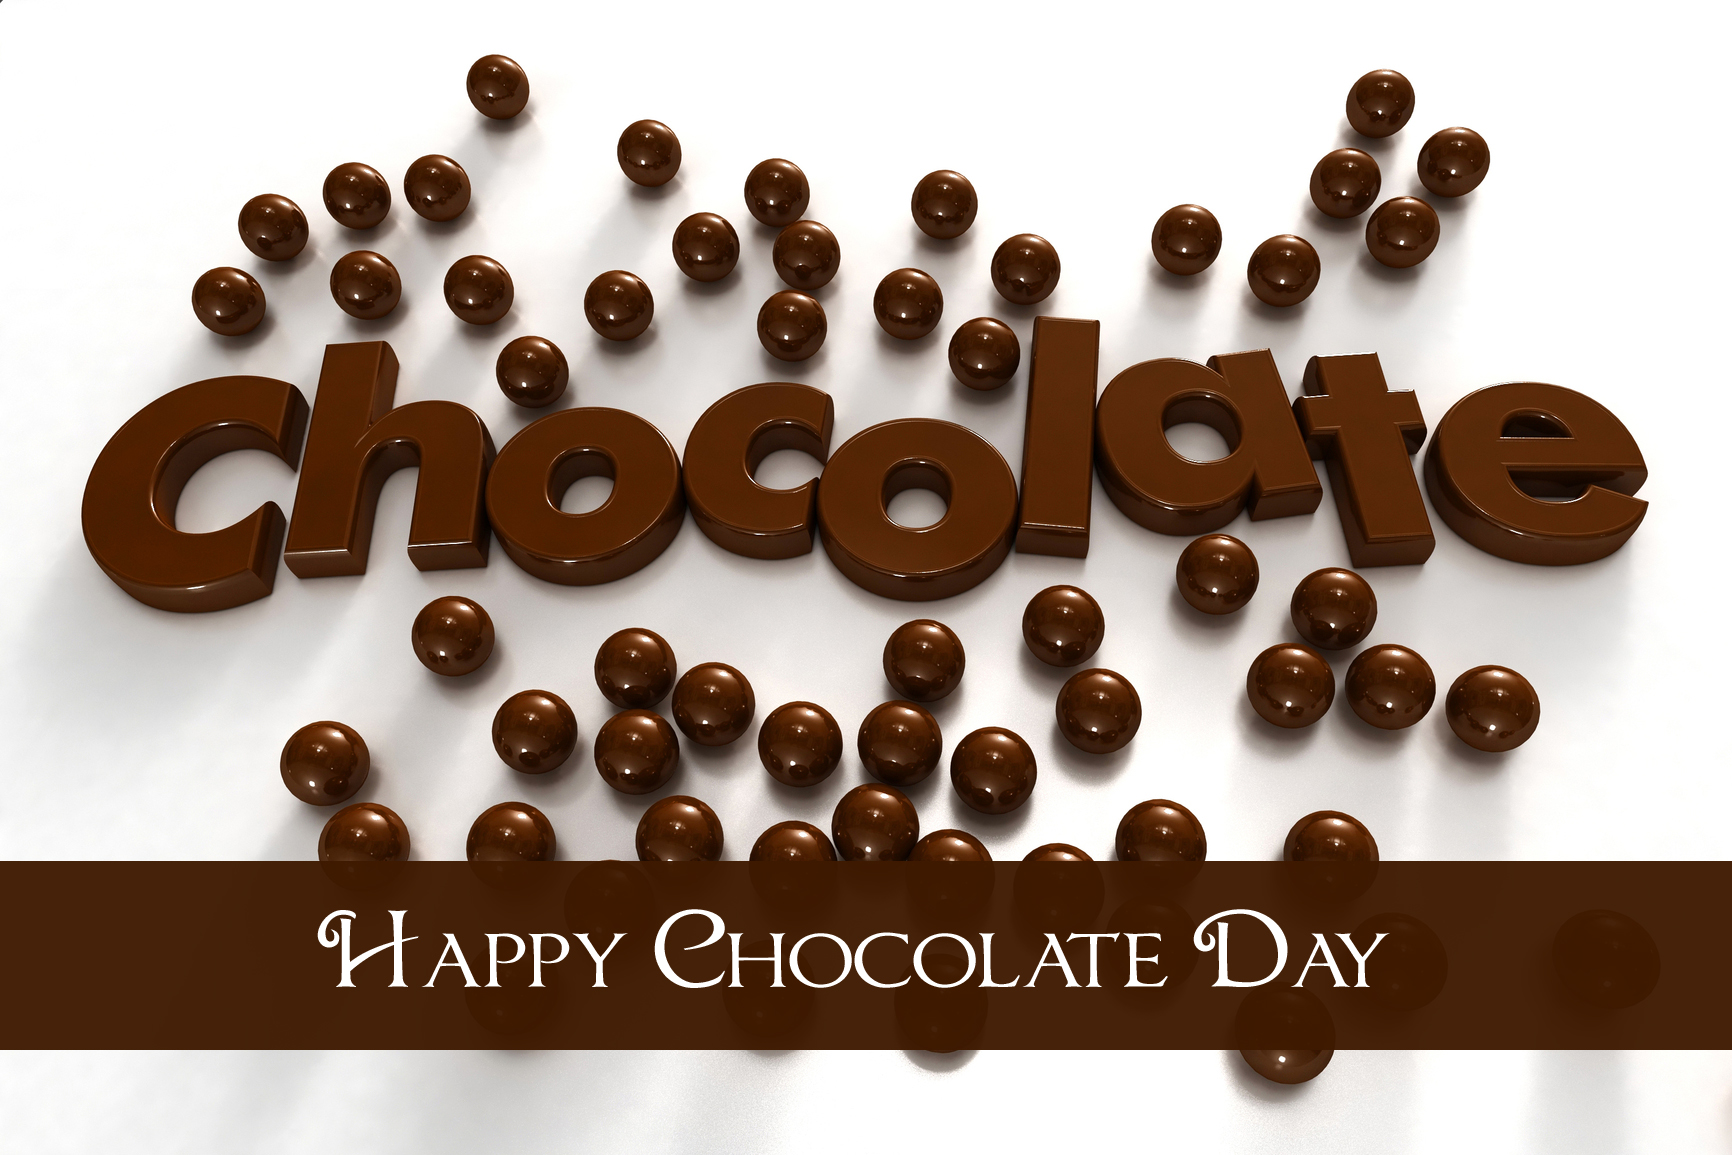 Happy Chocolate Day Whatsapp Status and Facebook Messages Whatsapp Lover 2